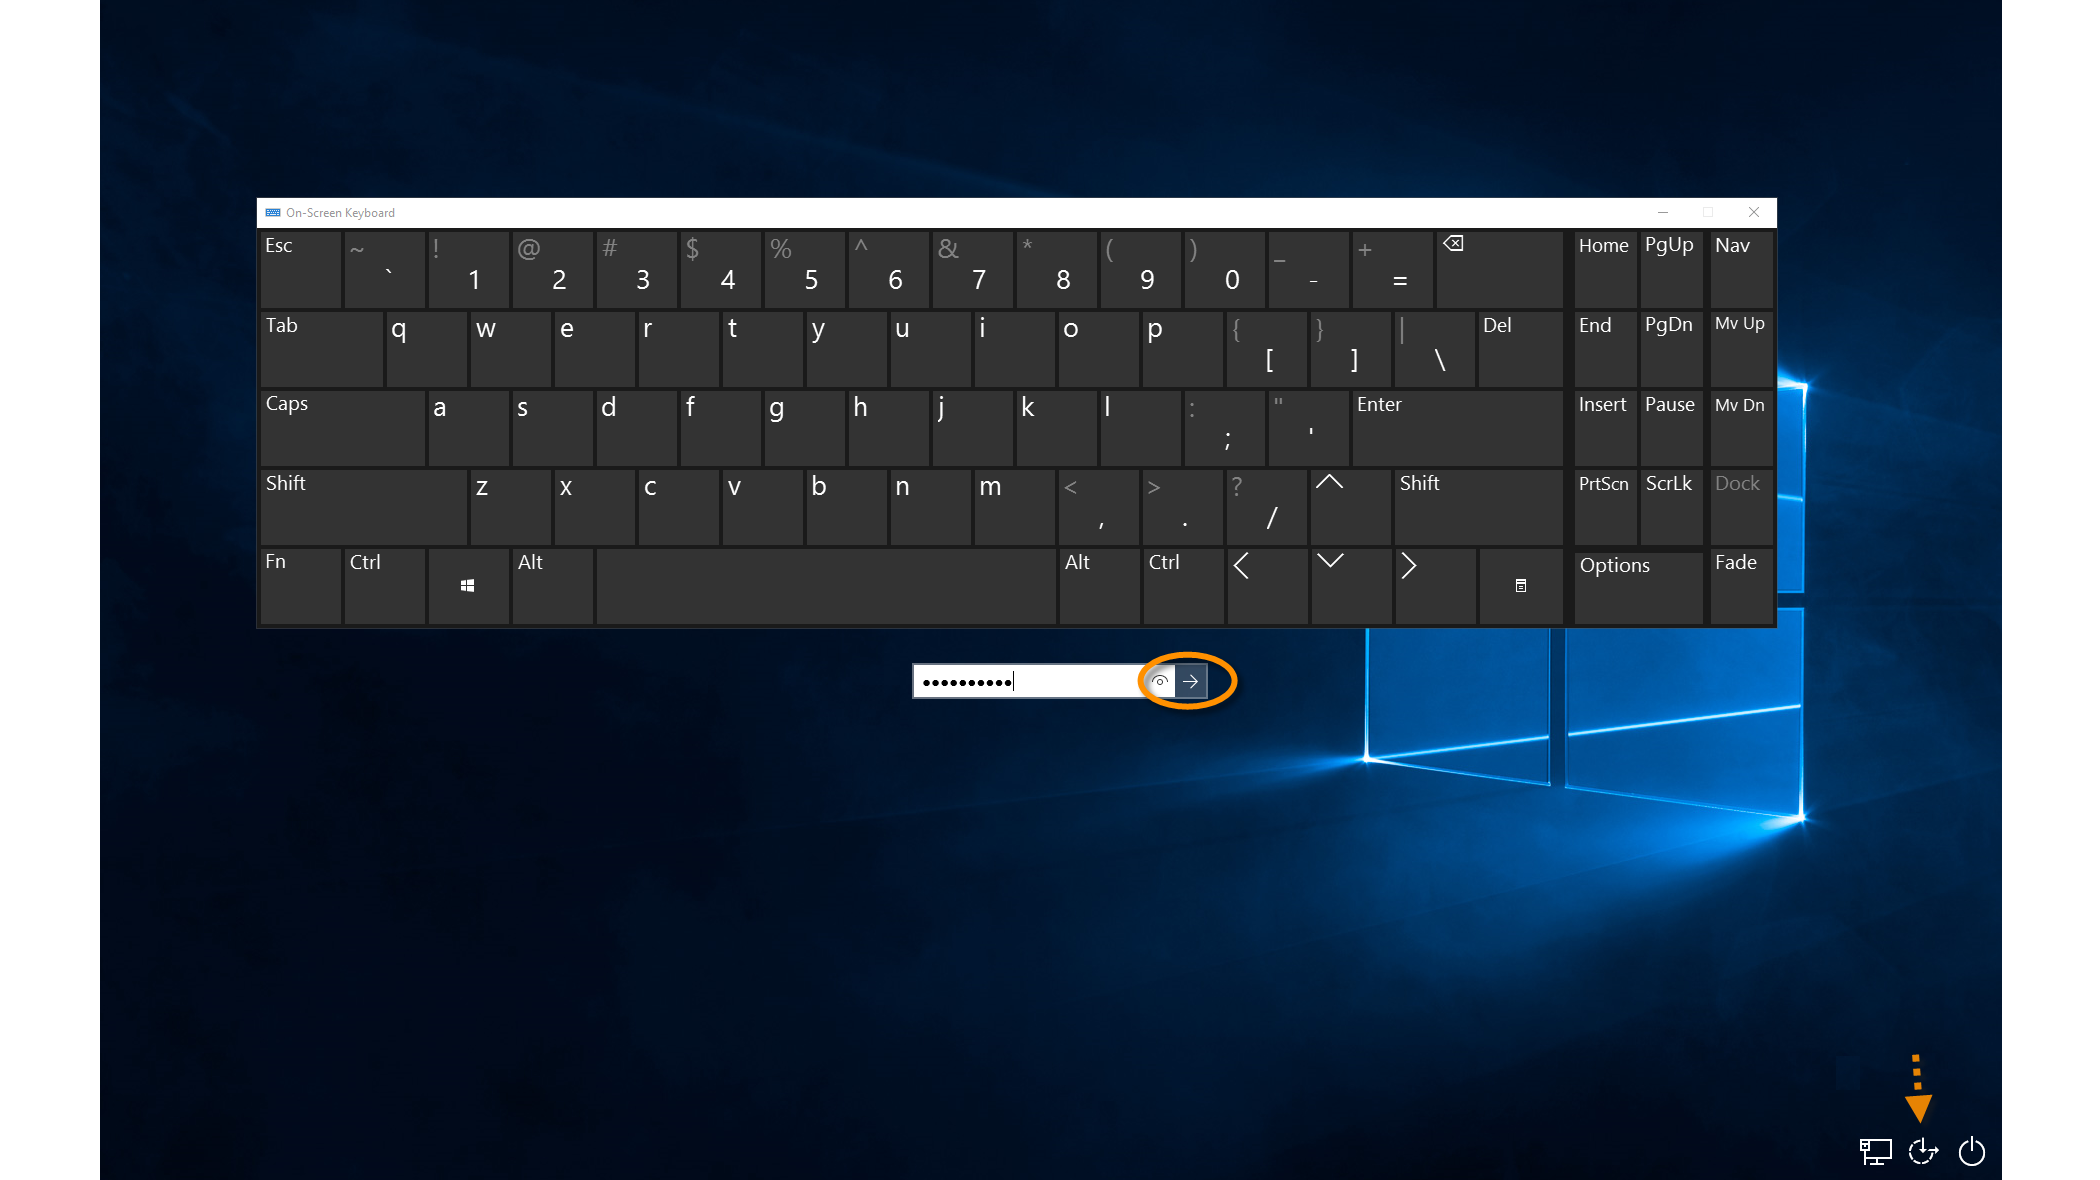 Troubleshooting An Unresponsive Keyboard Official Avast Support